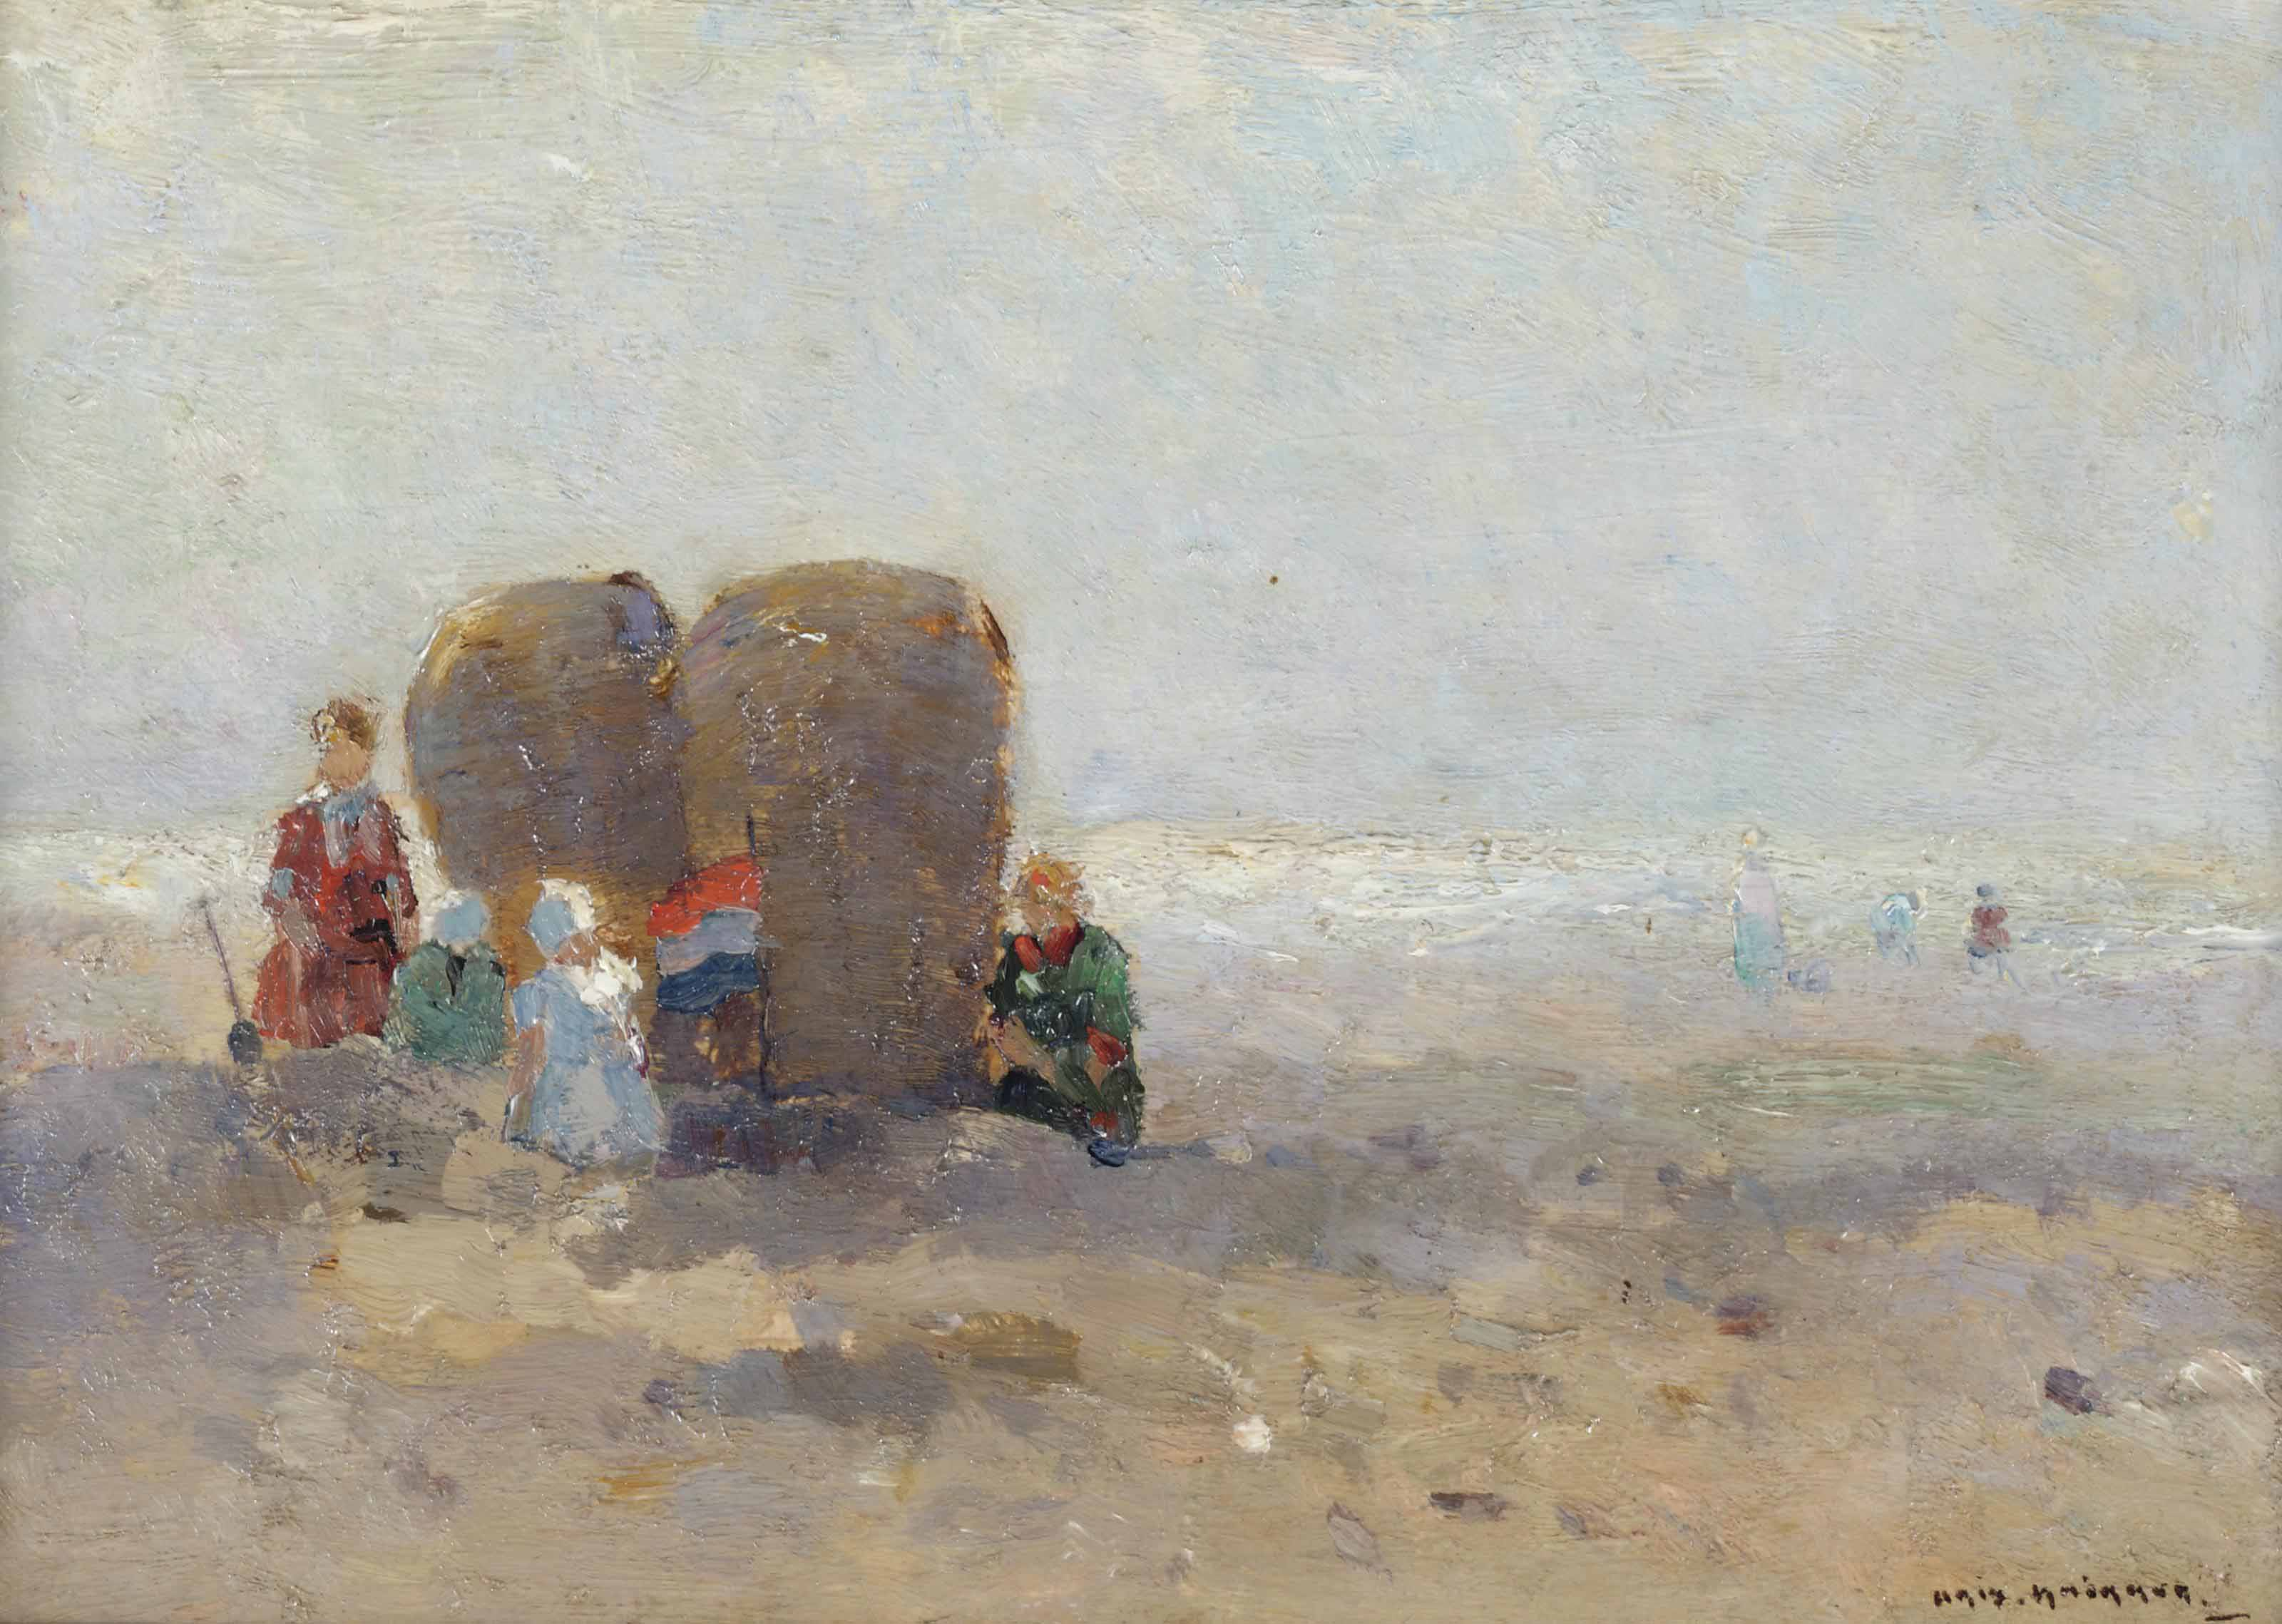 A sunny day at the beach